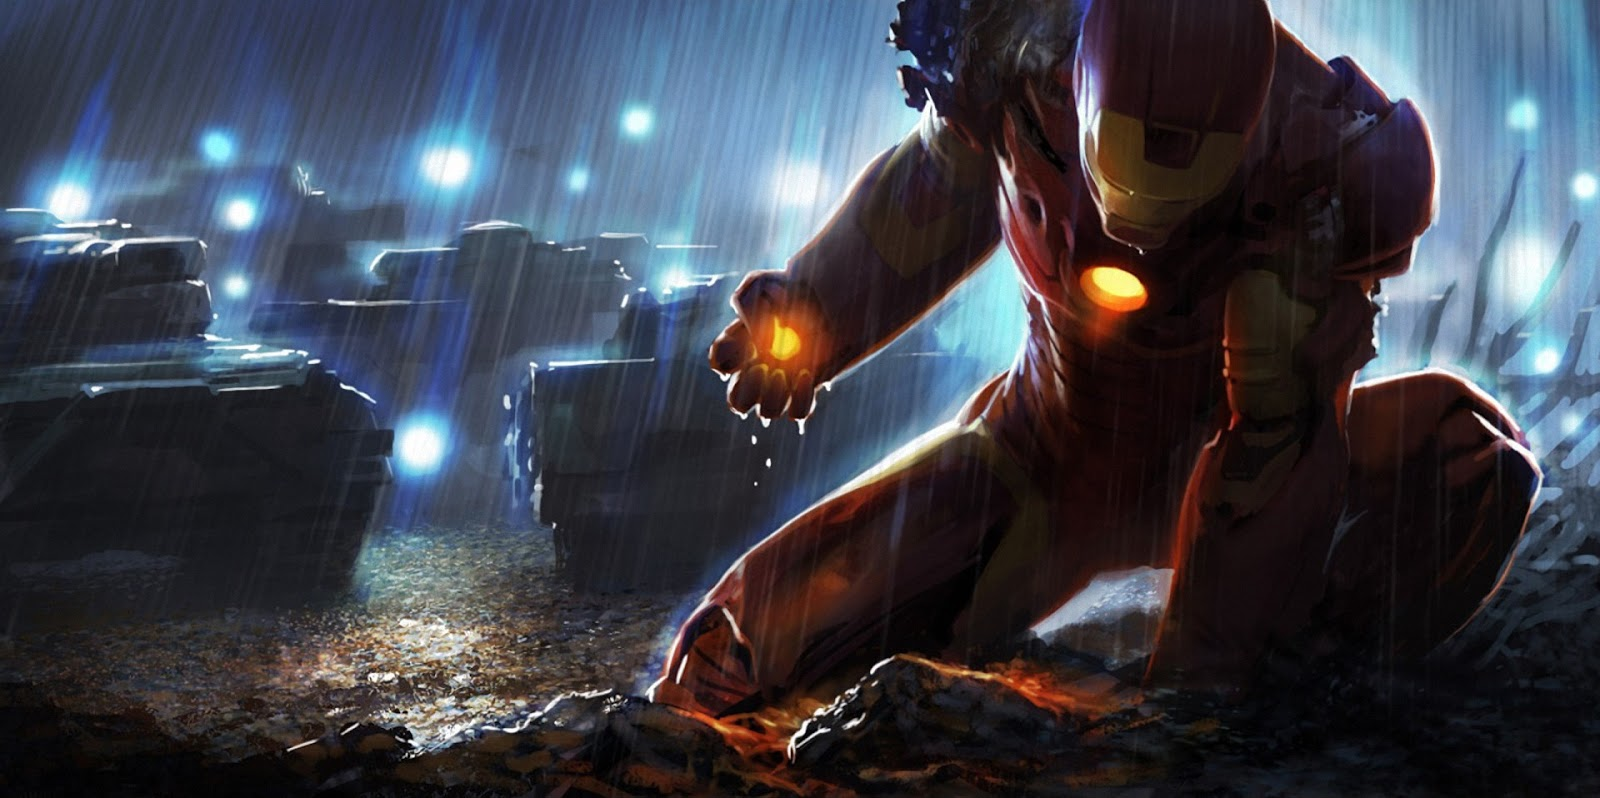 Heroes Superhero Raining Tanks HD Wallpaper Desktop PC Background 1600x798